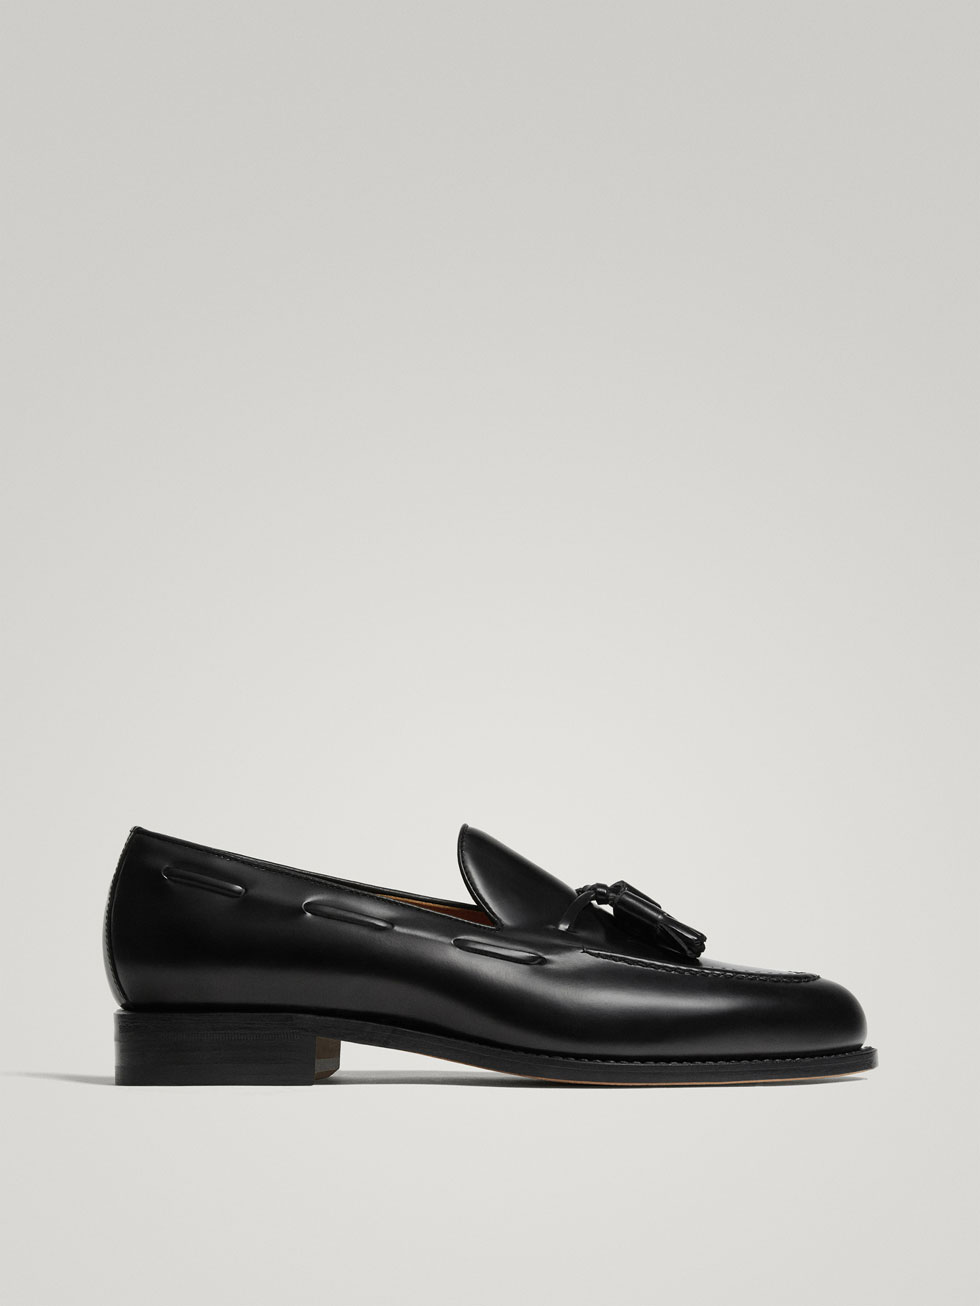 Black Leather Goodyear Loafers With Tassels by Massimo Dutti